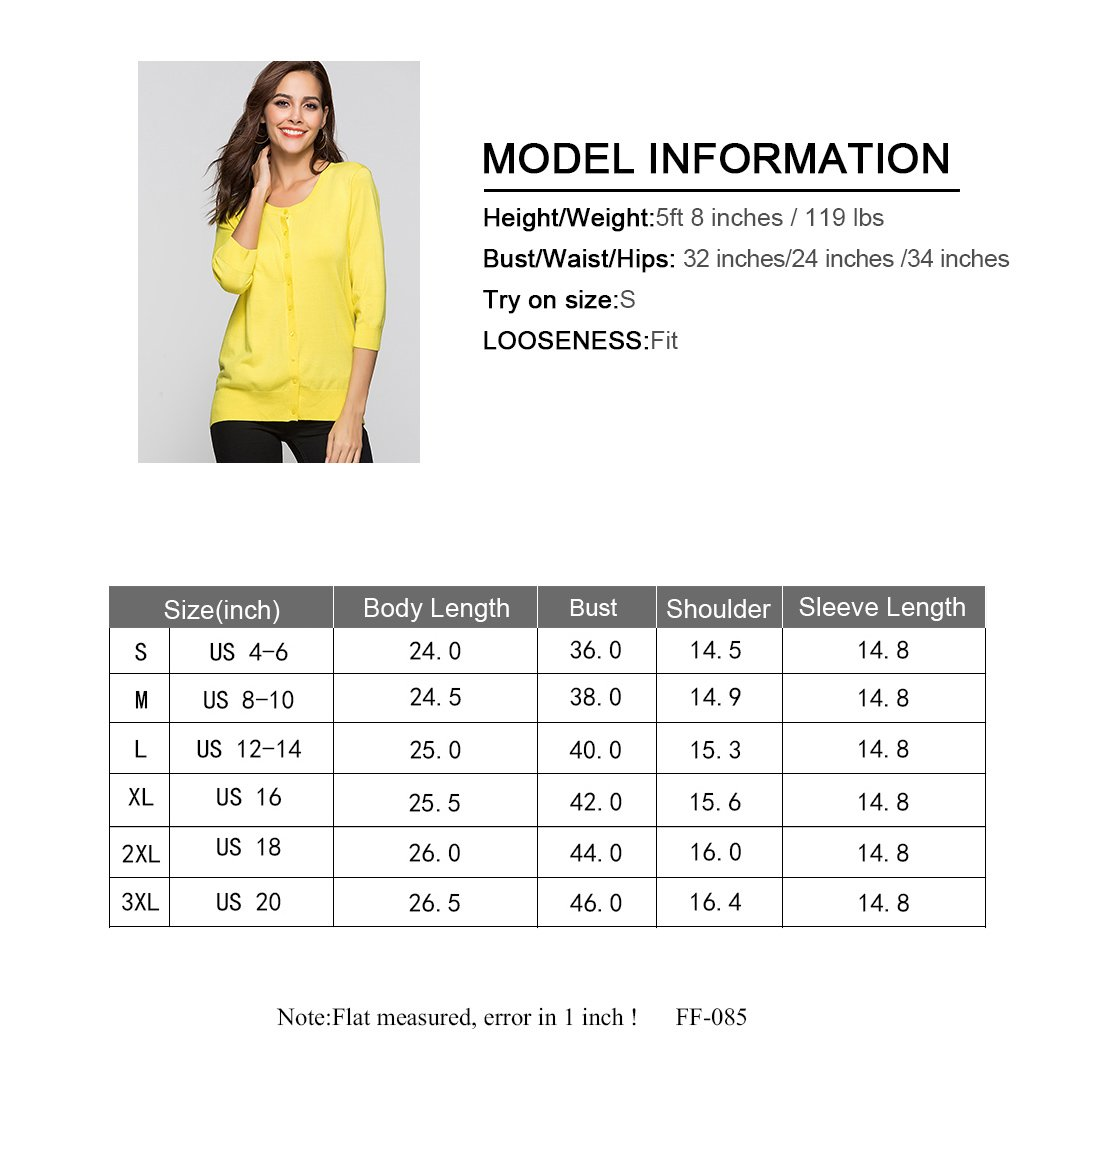 Escalier Women`s Button Down Crewneck 3 4 Sleeve Soft Knit Cardigan Sweaters by Escalier (Image #7)